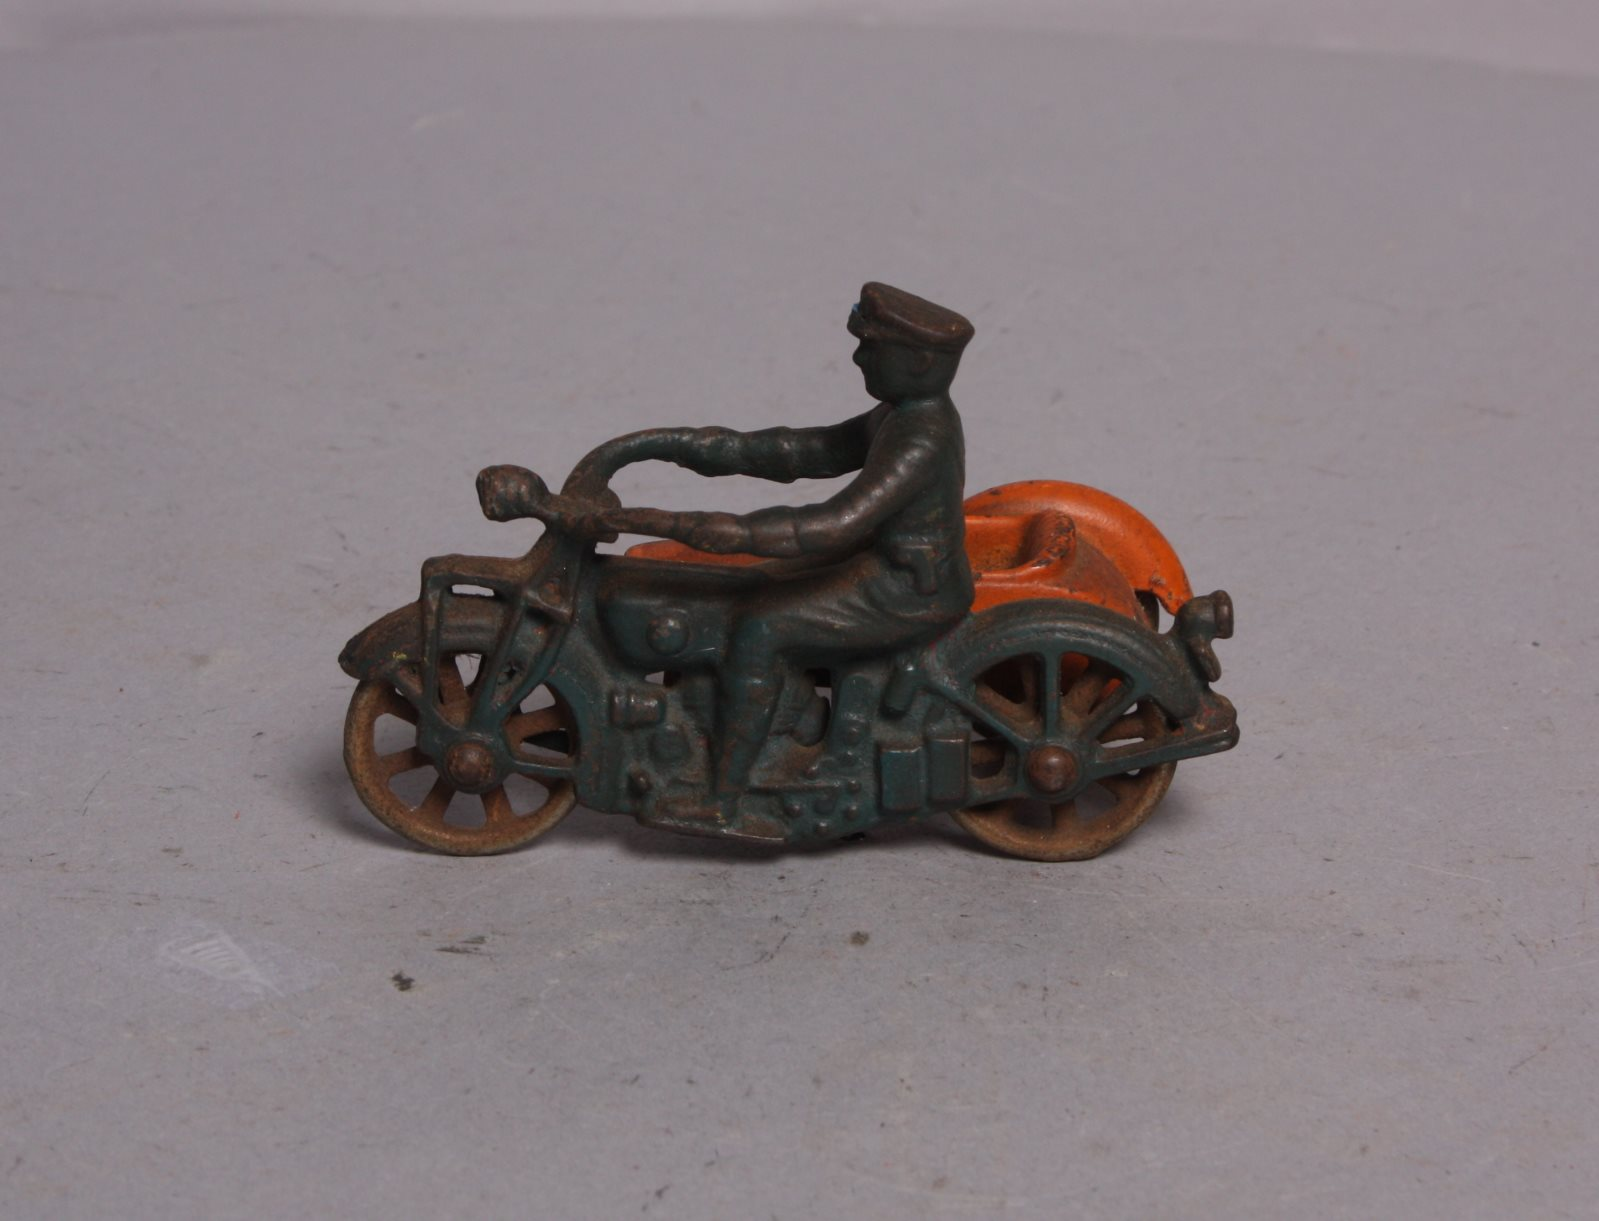 Buy Vintage Cast Iron Motorcycle with Side Car | Trainz Auctions